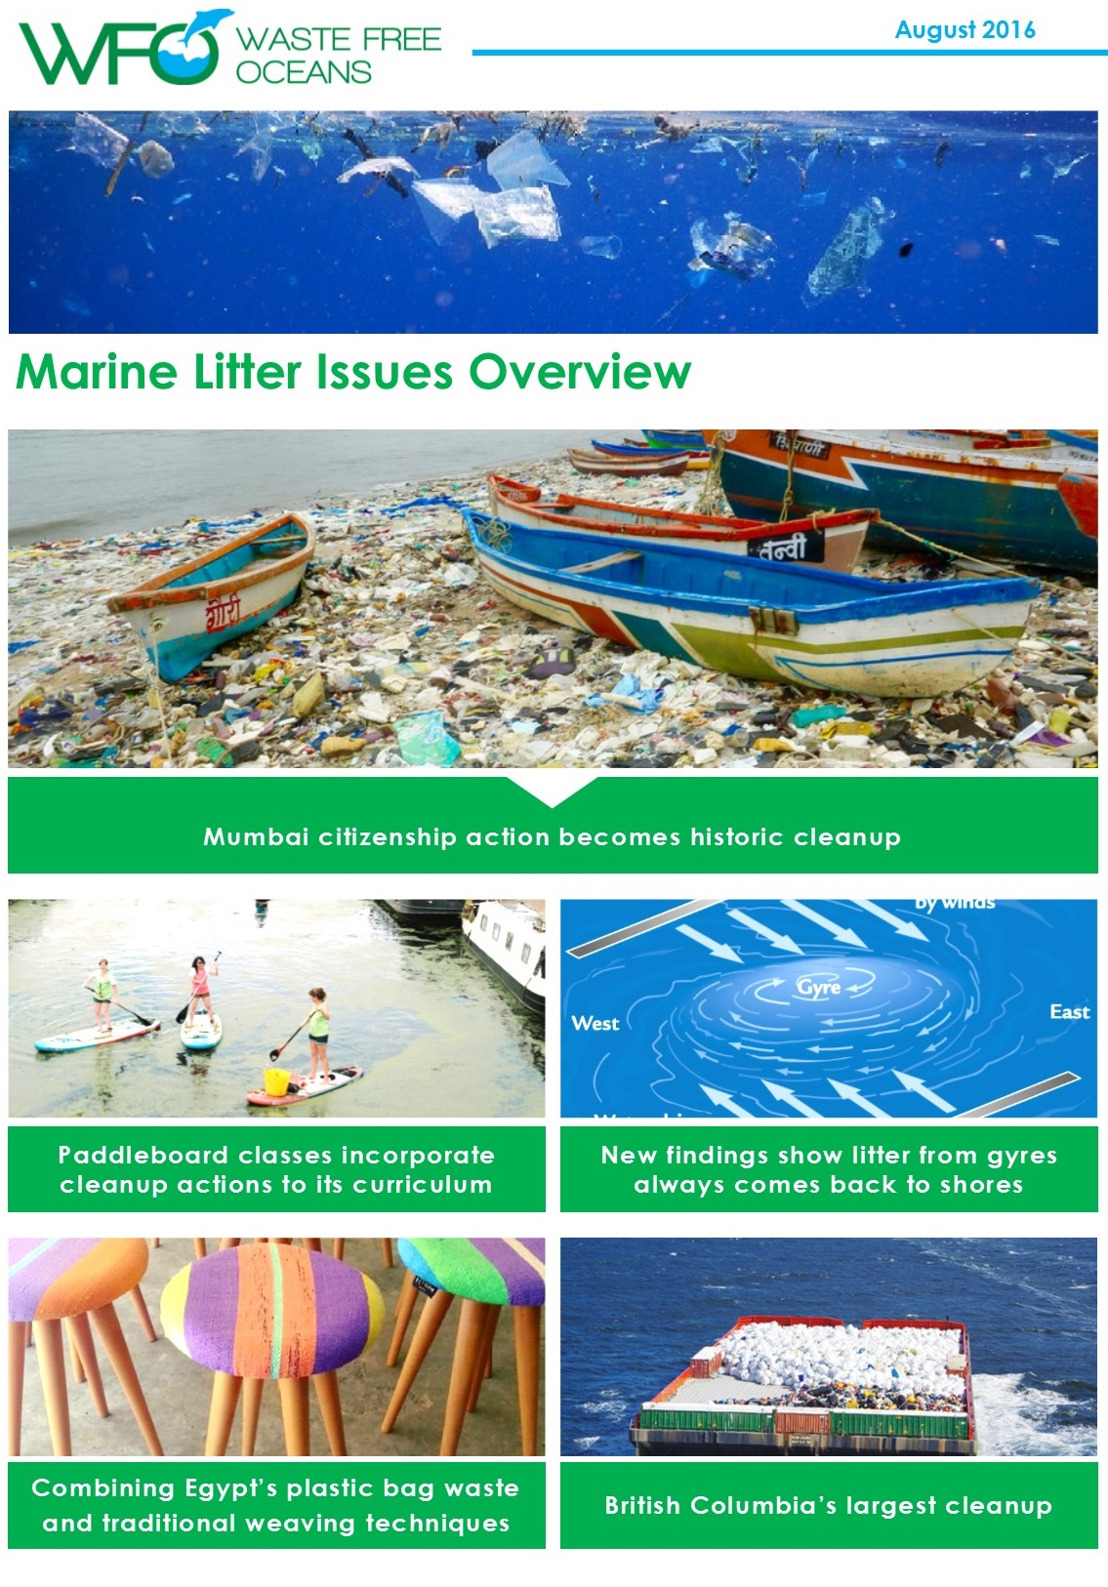 WFO Marine Litter Issues Overview - August 2016